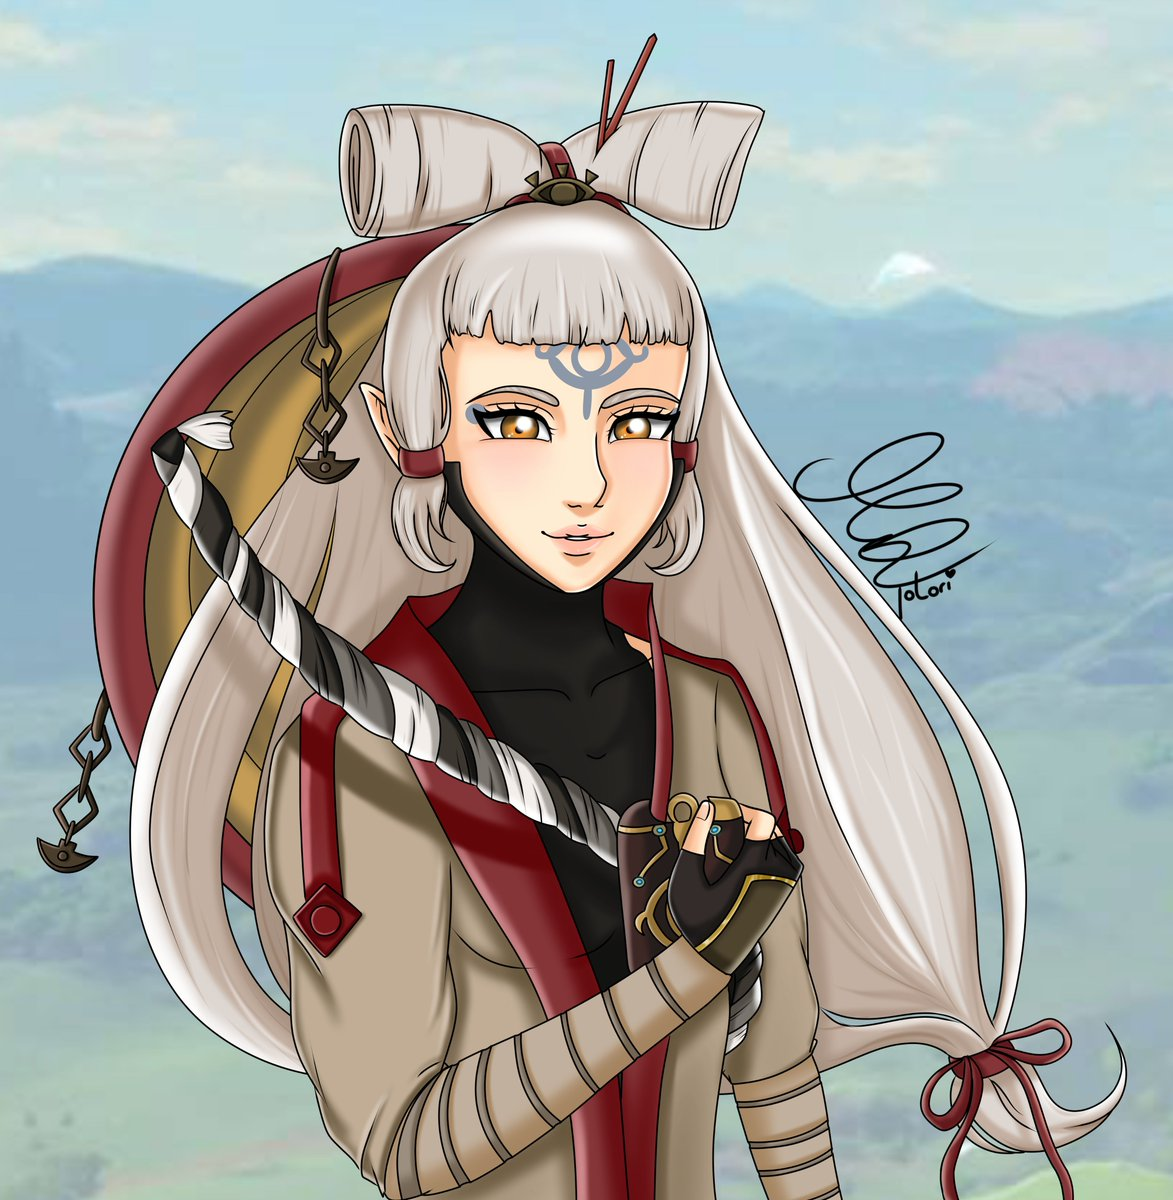 Totori Commissions On Hold On Twitter Young Impa Fanart I Had To Draw Her After I Saw The New Hyrule Warriors Age Of Calamity Trailer Really Hyped For